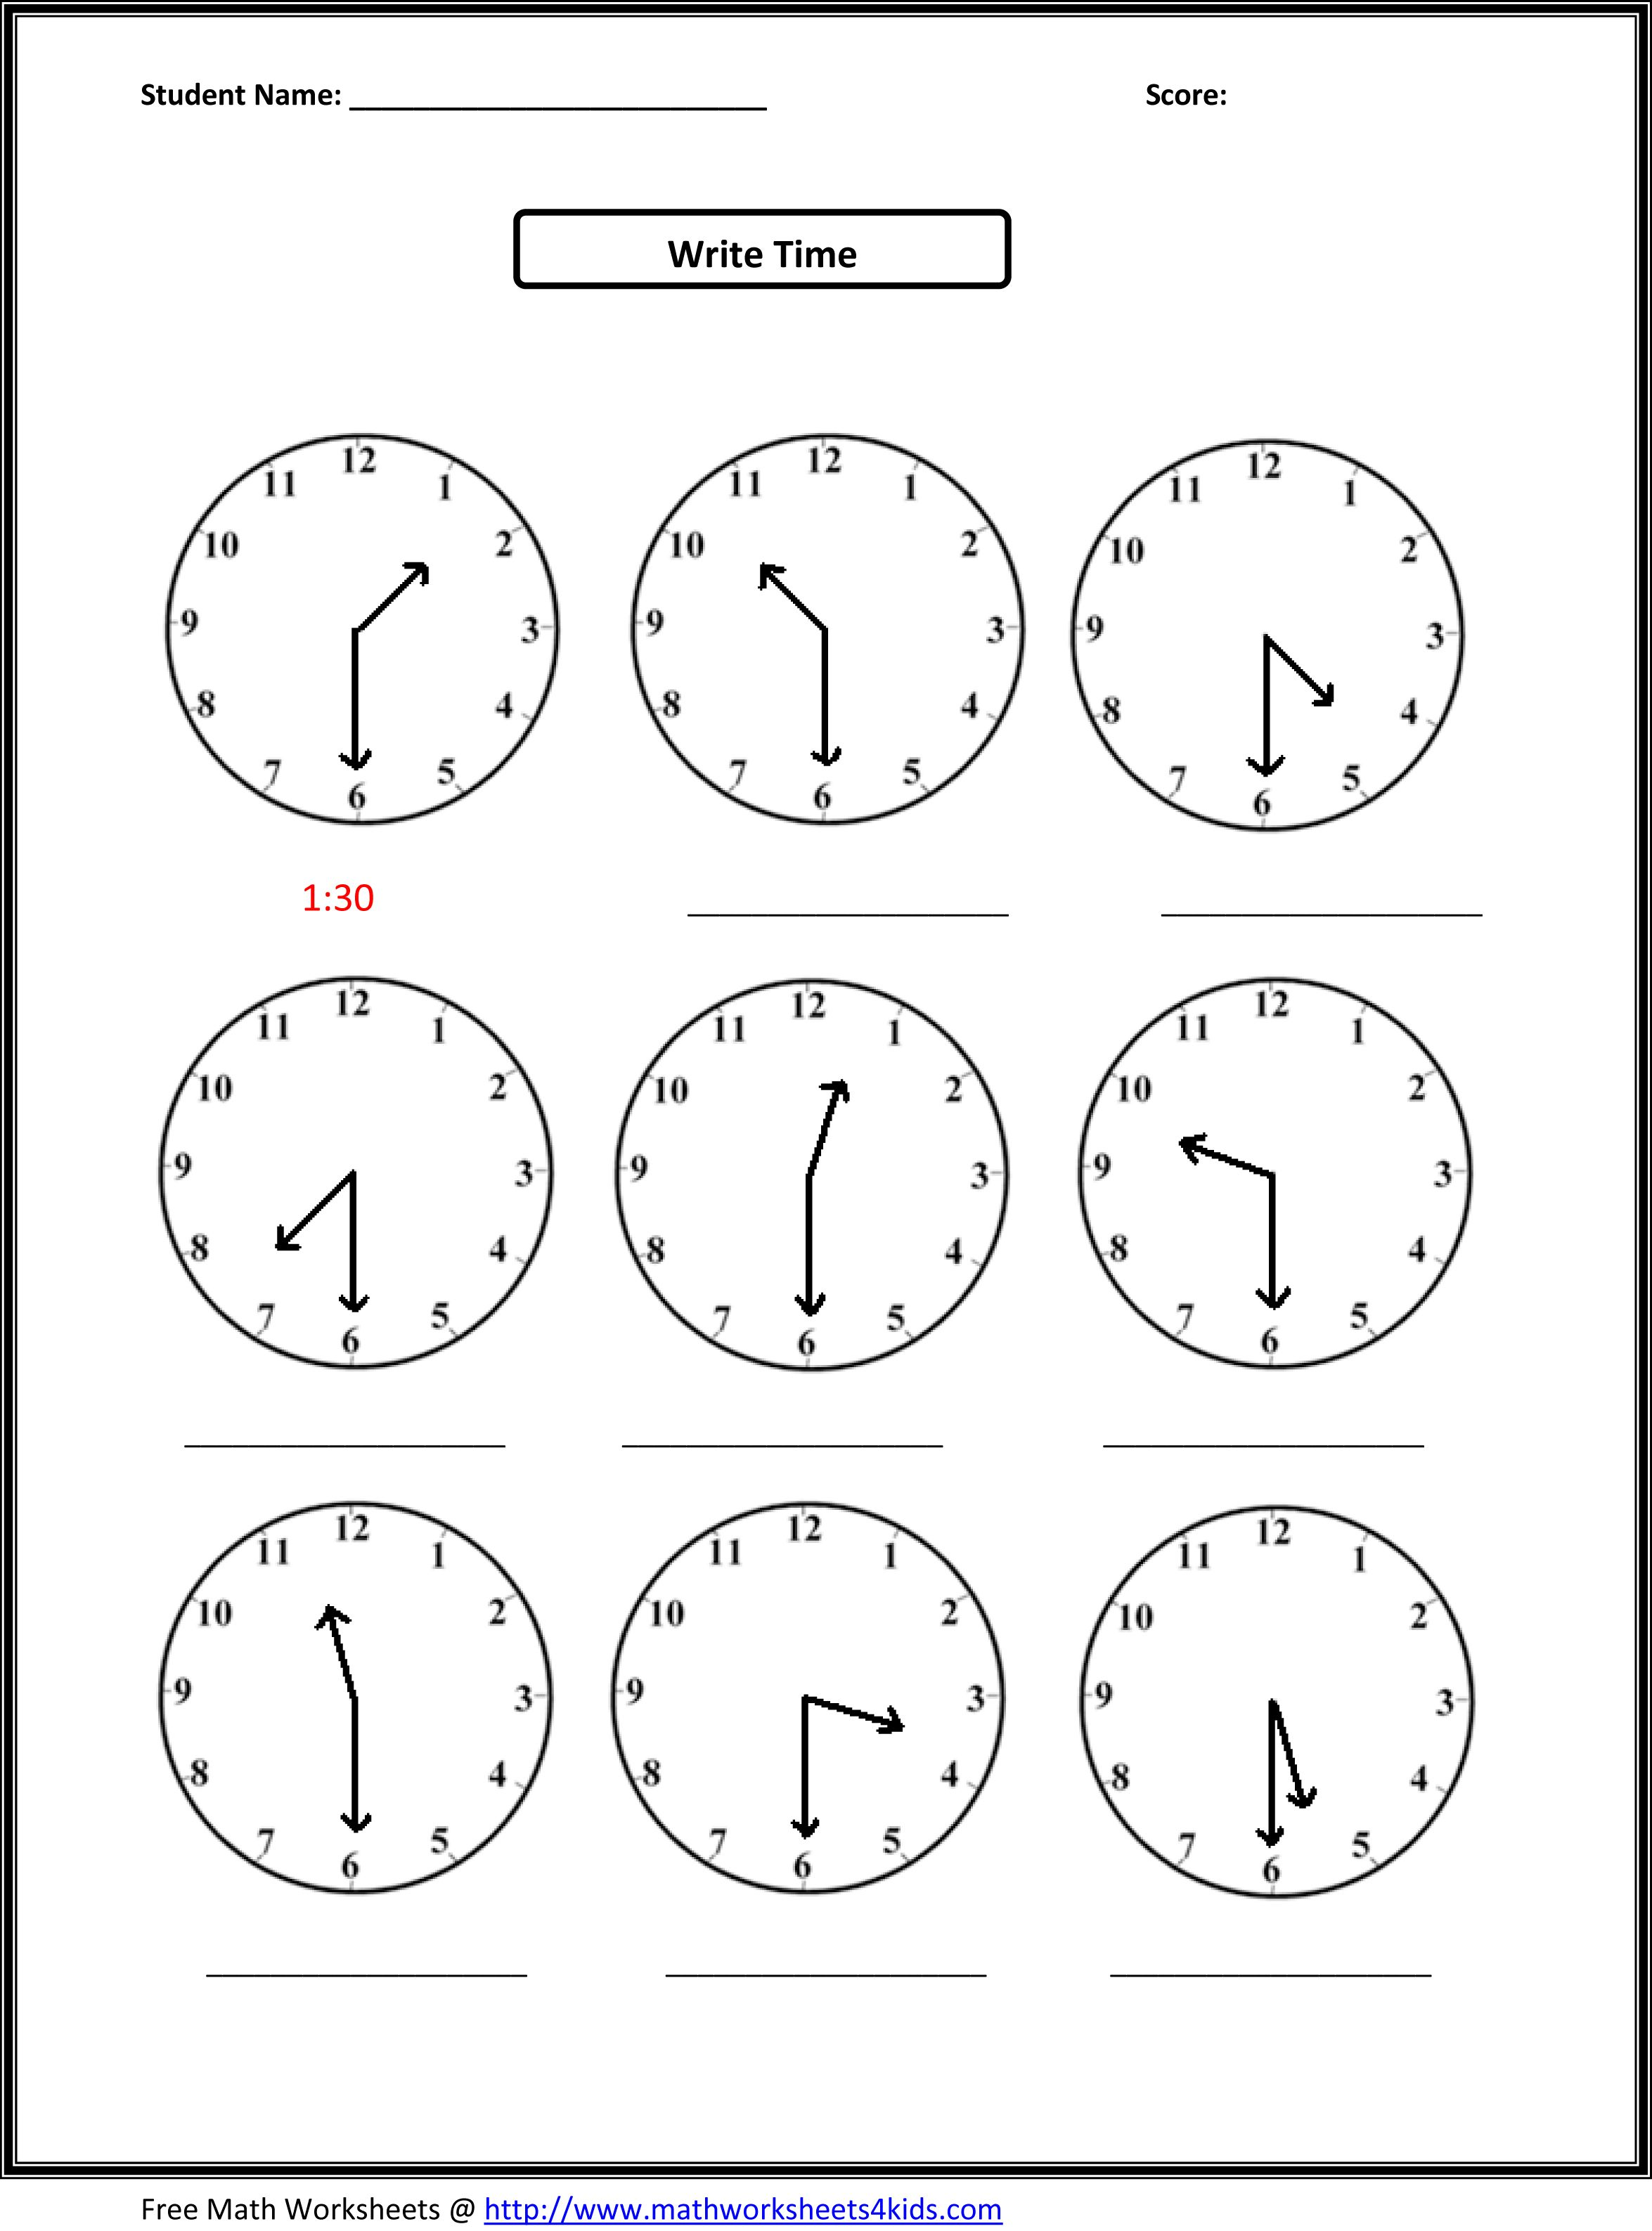 Weirdmailus  Nice Worksheet On Time For Grade   Reocurent With Heavenly Free Printable Telling Time Worksheets Nd Grade  Reocurent With Beauteous Map Scales Worksheet Also Weekly Budget Worksheet Printable In Addition Reducing Radicals Worksheet And Th Grade Addition Worksheets As Well As Pronouns Worksheets Nd Grade Additionally A Raisin In The Sun Worksheets From Reocurentcom With Weirdmailus  Heavenly Worksheet On Time For Grade   Reocurent With Beauteous Free Printable Telling Time Worksheets Nd Grade  Reocurent And Nice Map Scales Worksheet Also Weekly Budget Worksheet Printable In Addition Reducing Radicals Worksheet From Reocurentcom